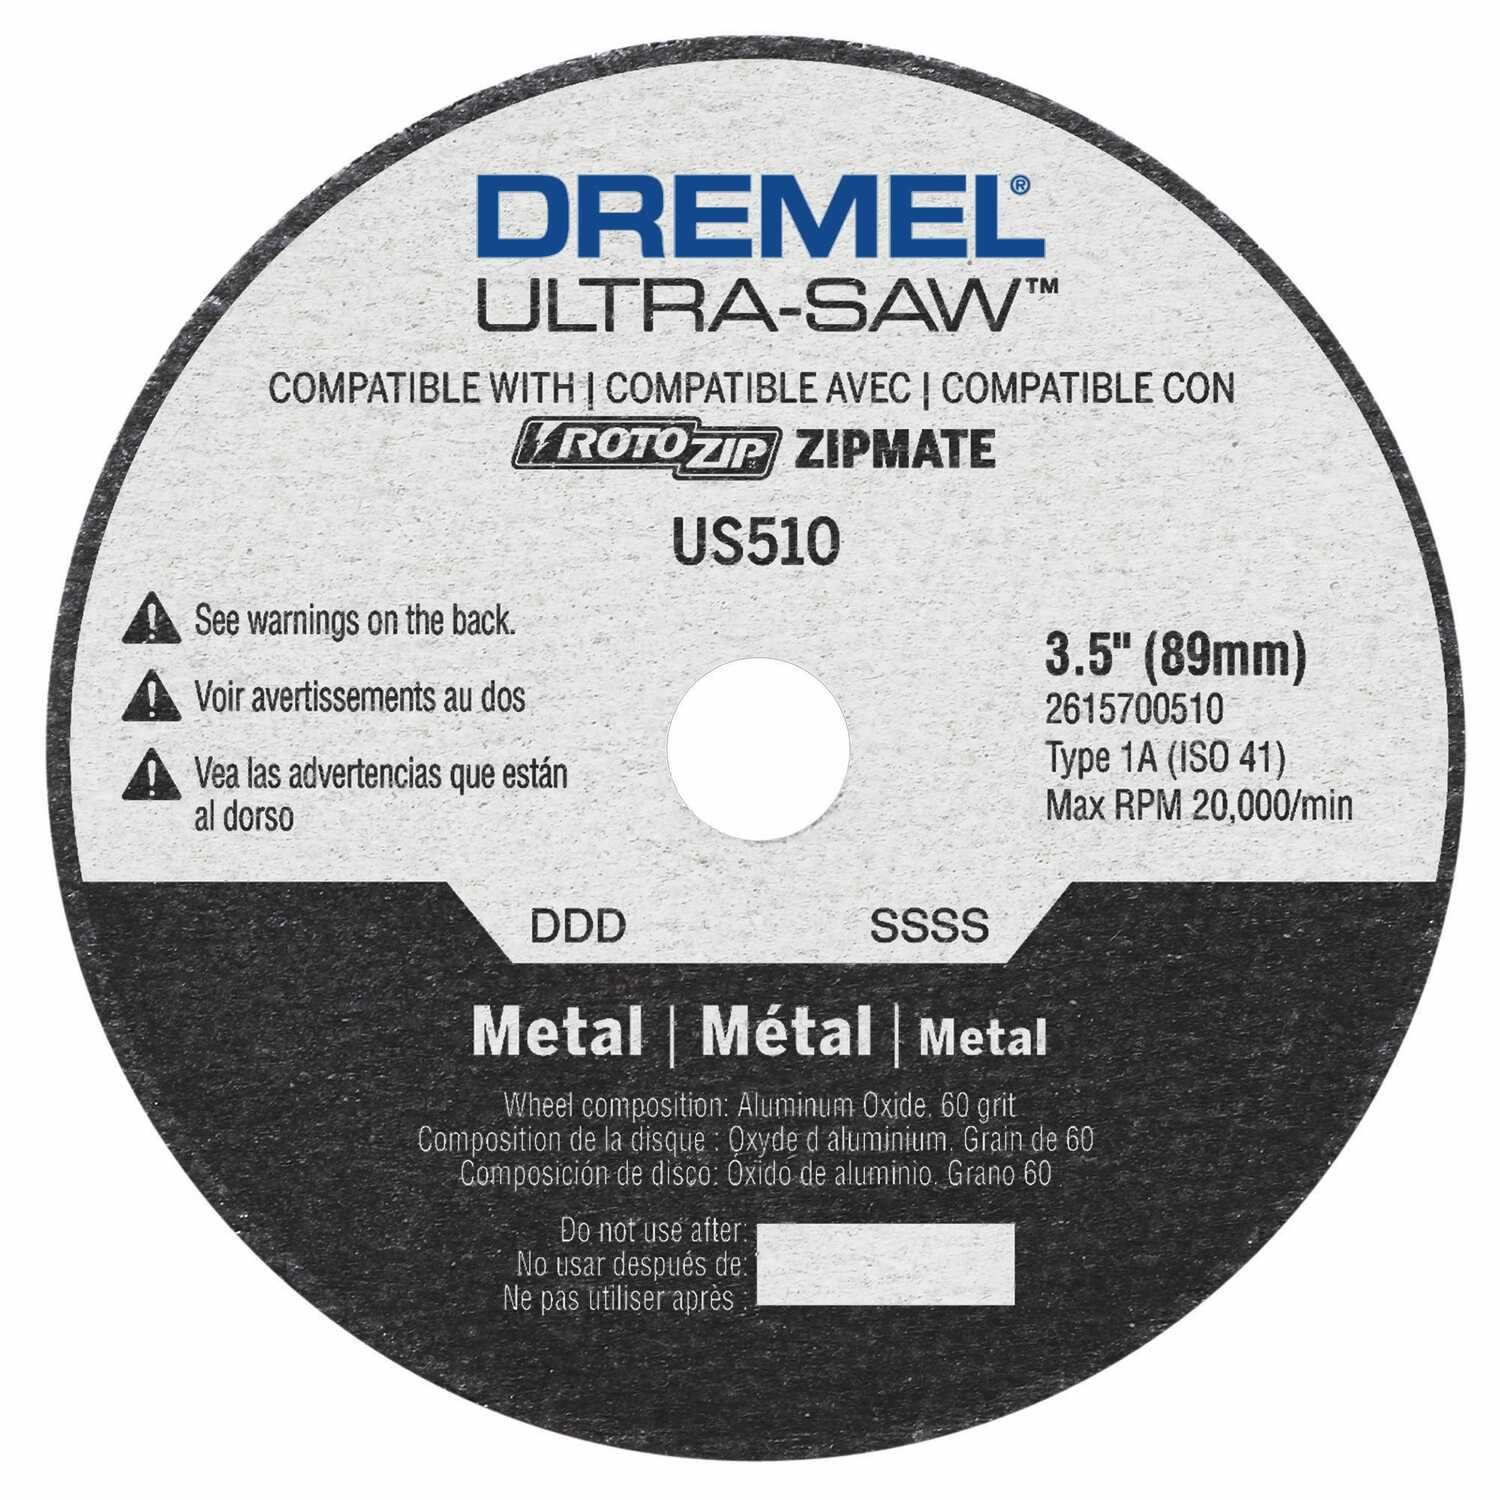 Dremel  Ultra-Saw  3-1/4 in. Aluminum Oxide  Metal Cutting Wheel  .049 in.  x 1/2 in. in.  1 pc.